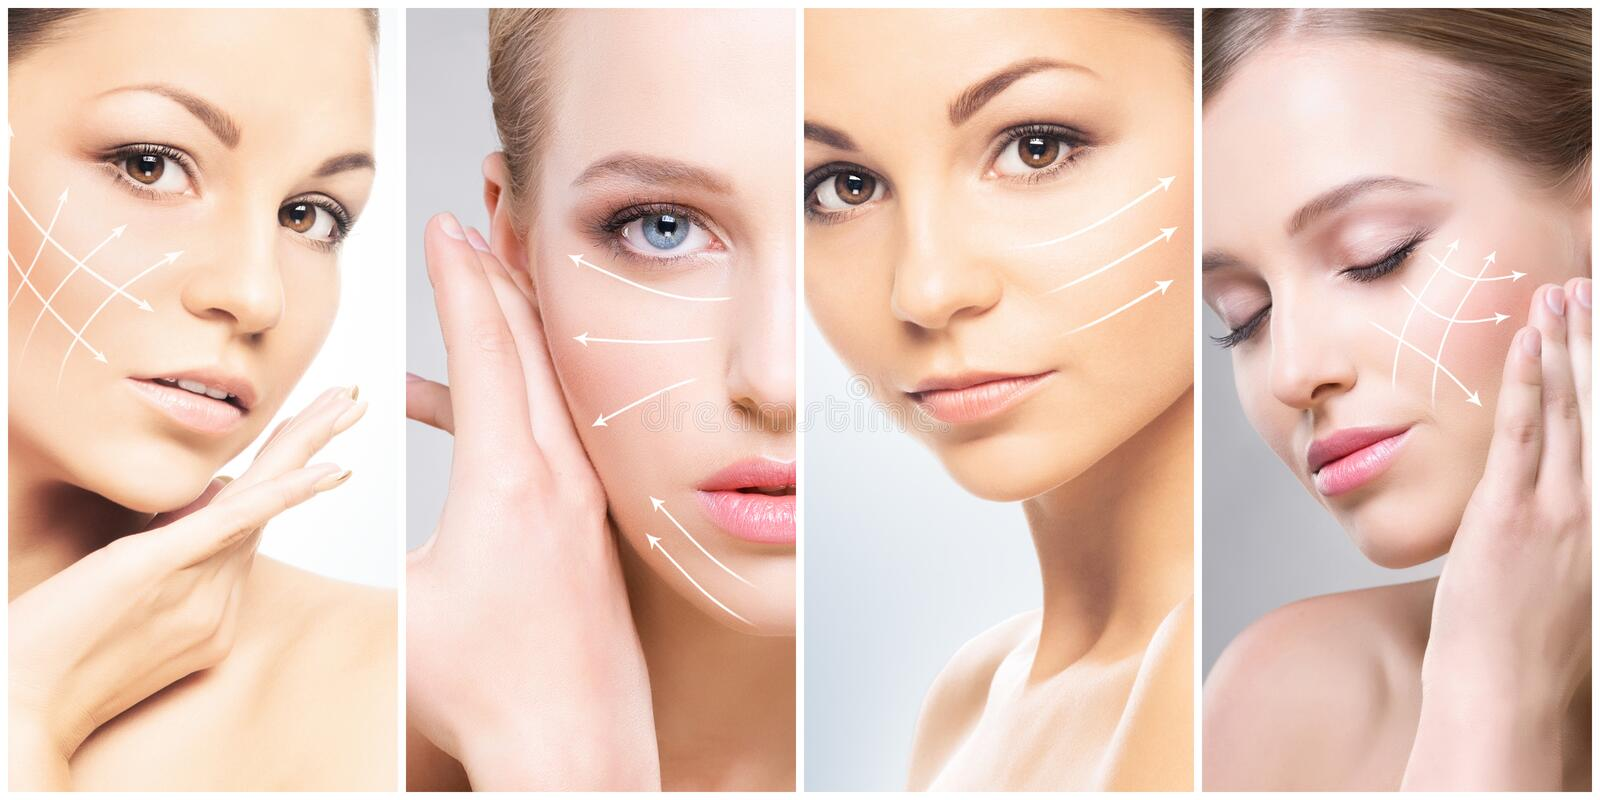 Human face in a collage. Young and healthy woman in plastic surgery, medicine, spa and face lifting concept. stock photography